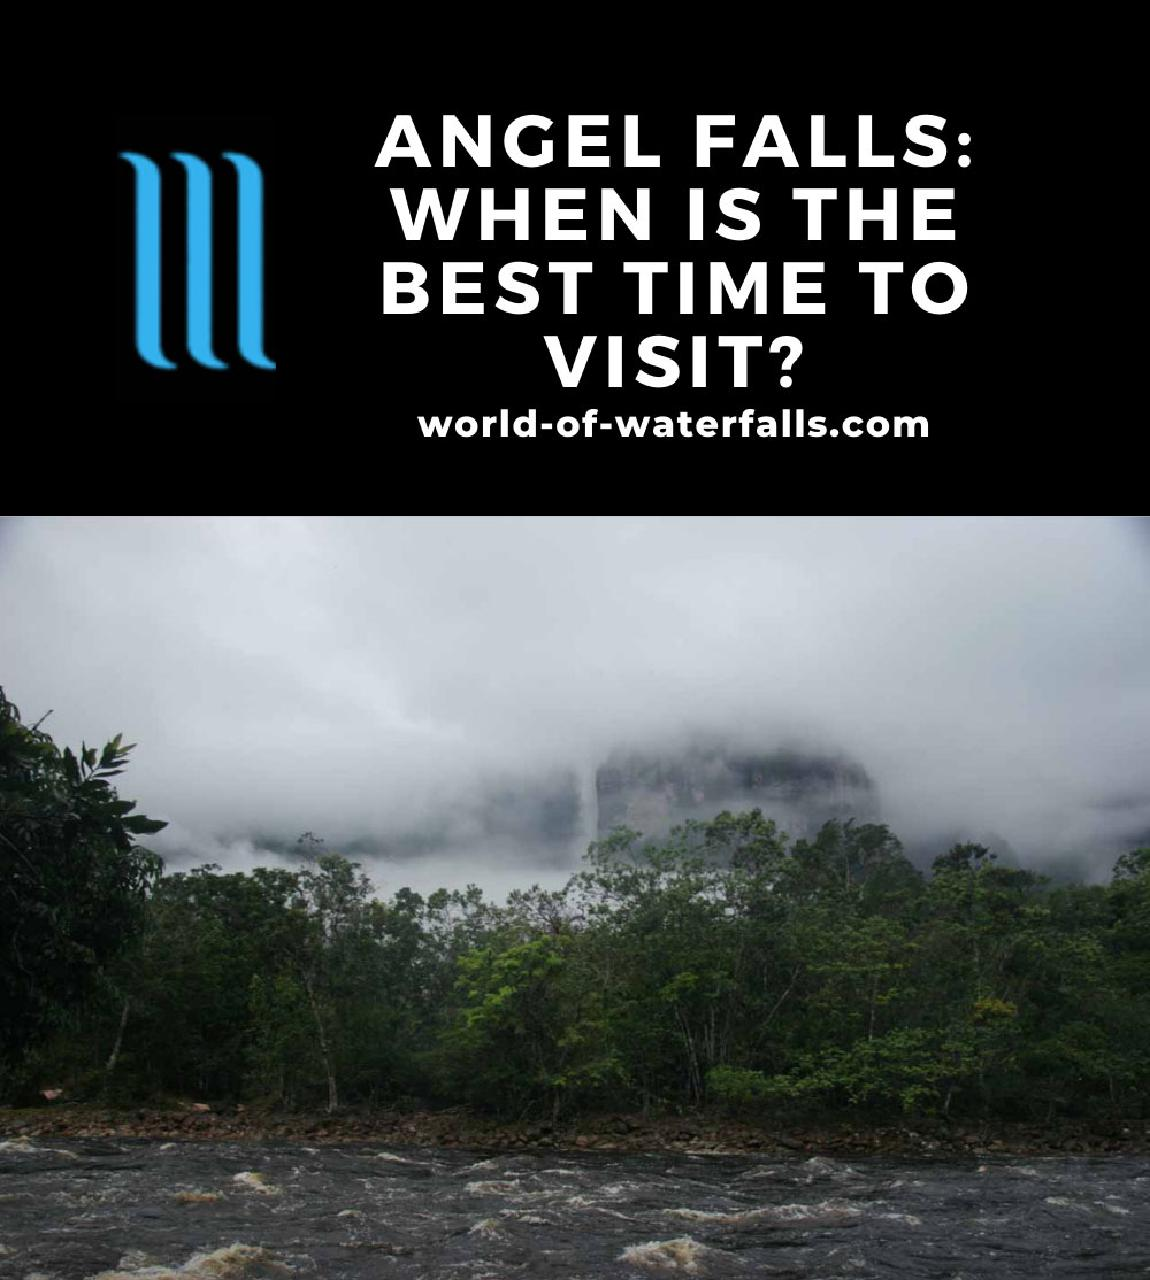 Angel Falls: When Is The Best Time To Visit?